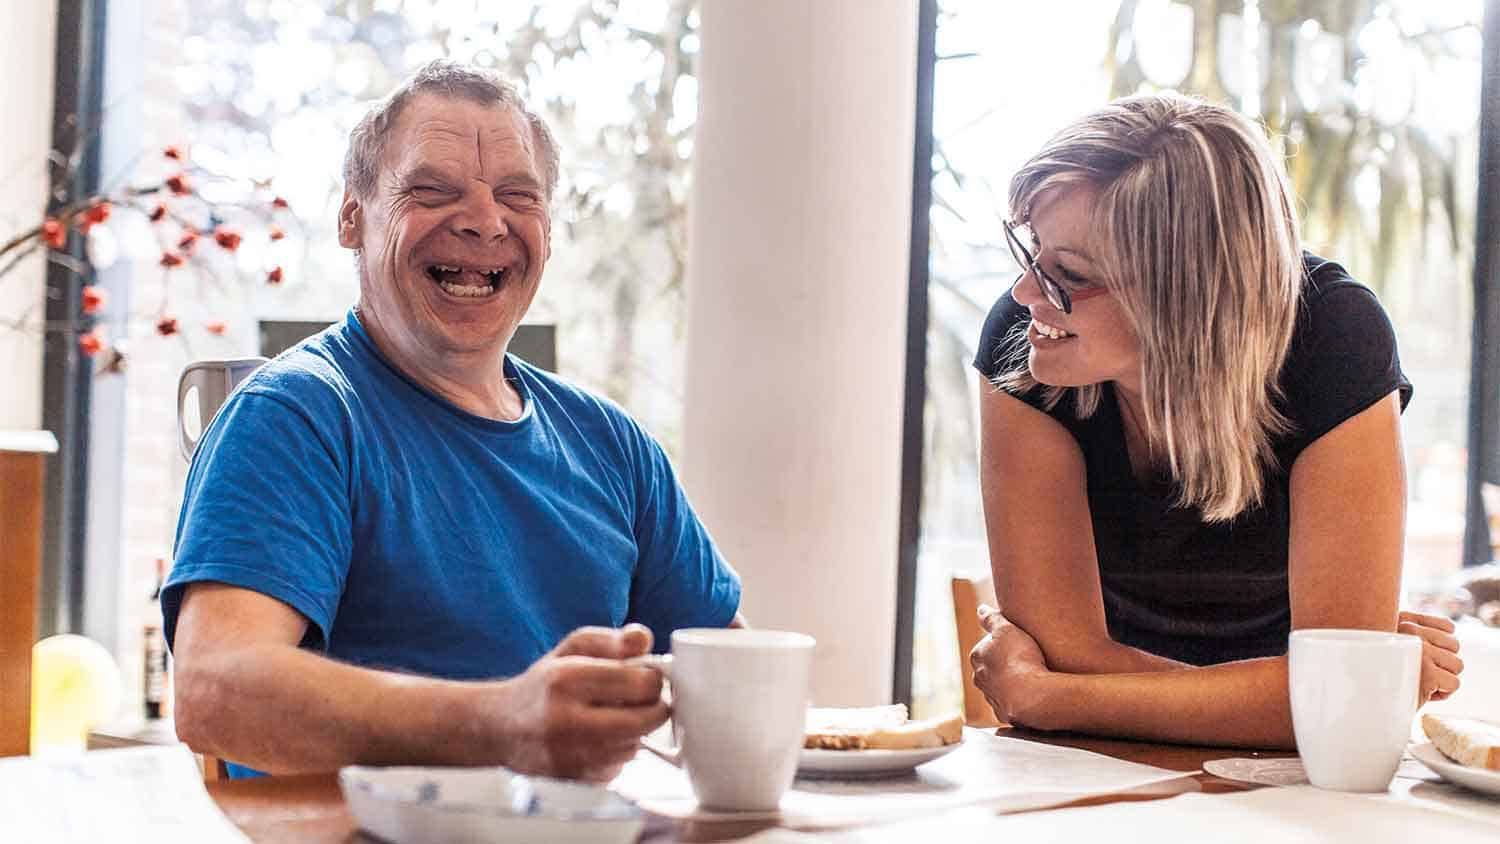 A man with down syndrome enjoying coffee with someone